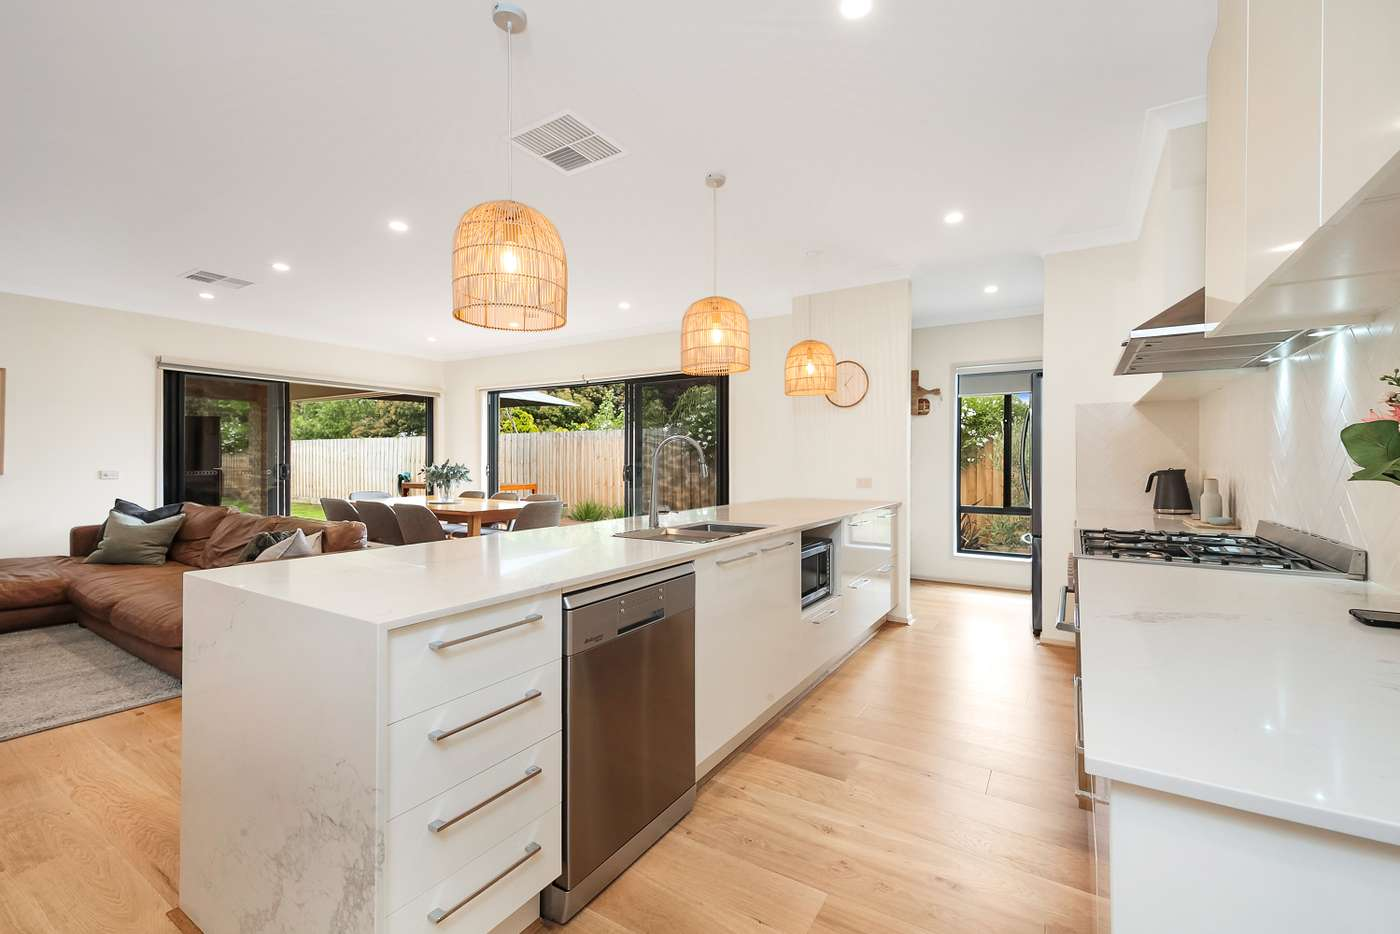 Fifth view of Homely house listing, 21 Ronald Street, Tootgarook VIC 3941